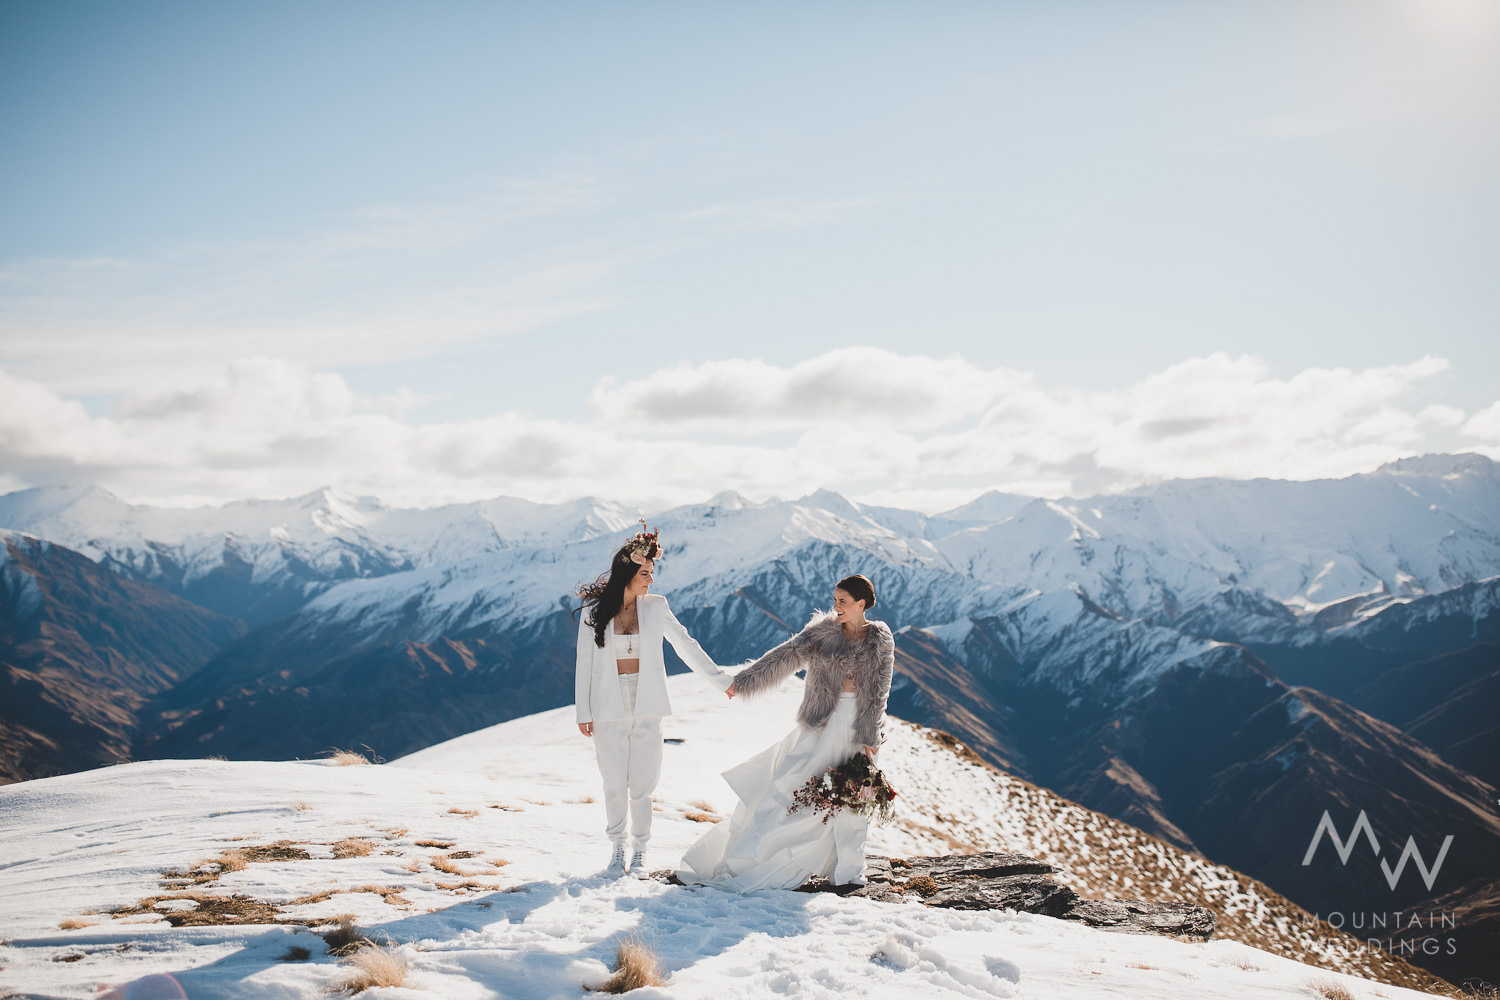 Vanguard Peak Mountain Weddings